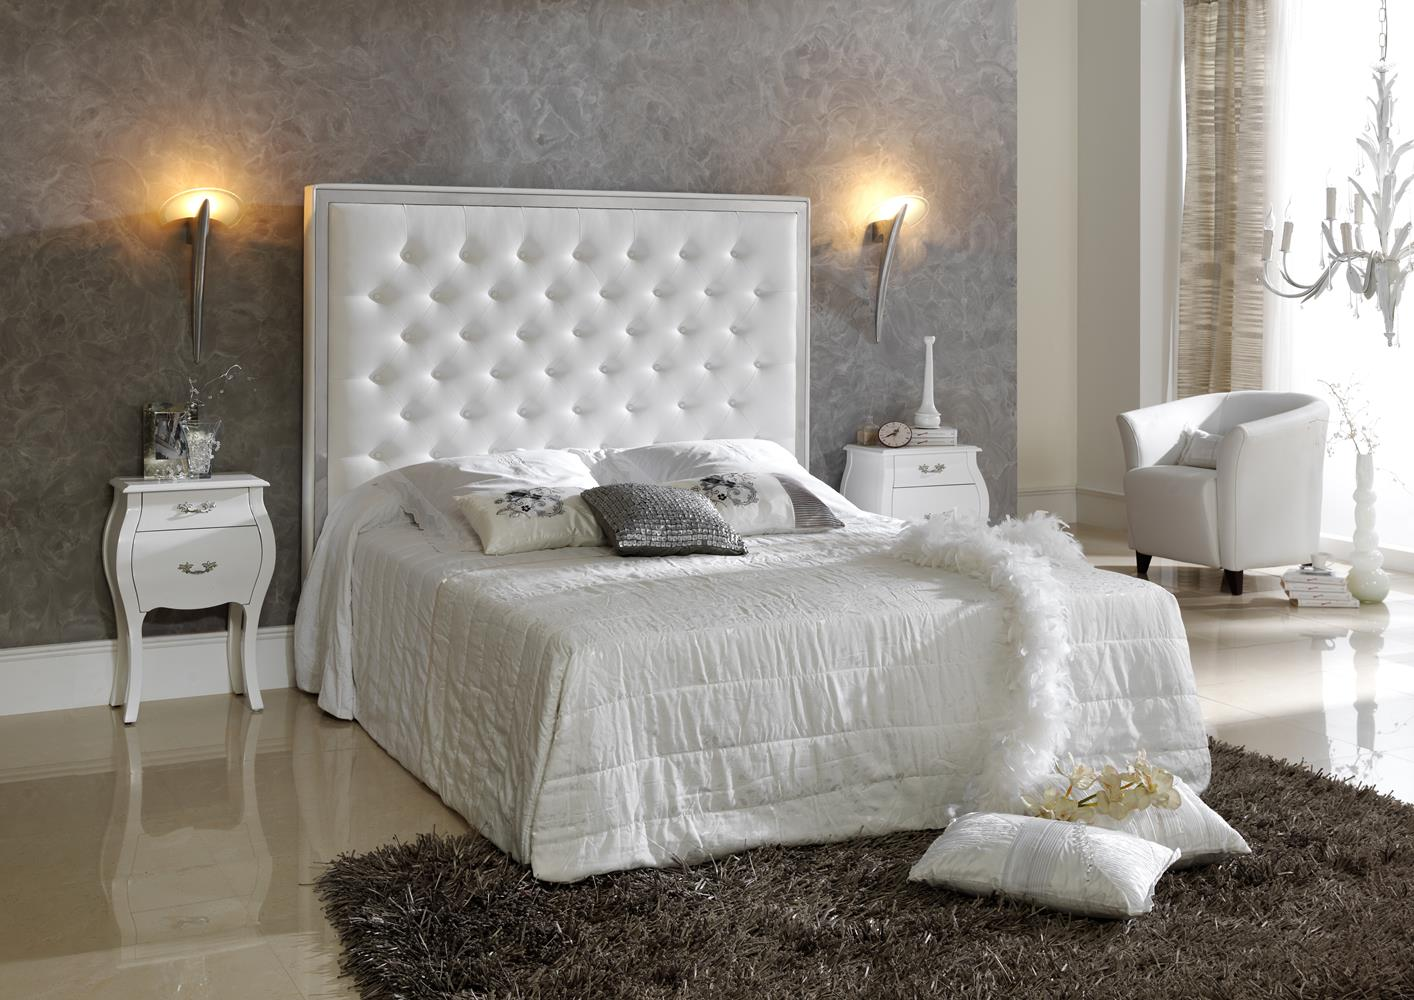 acheter votre lit contemporain capitonn blanc avec coffre chez simeuble. Black Bedroom Furniture Sets. Home Design Ideas